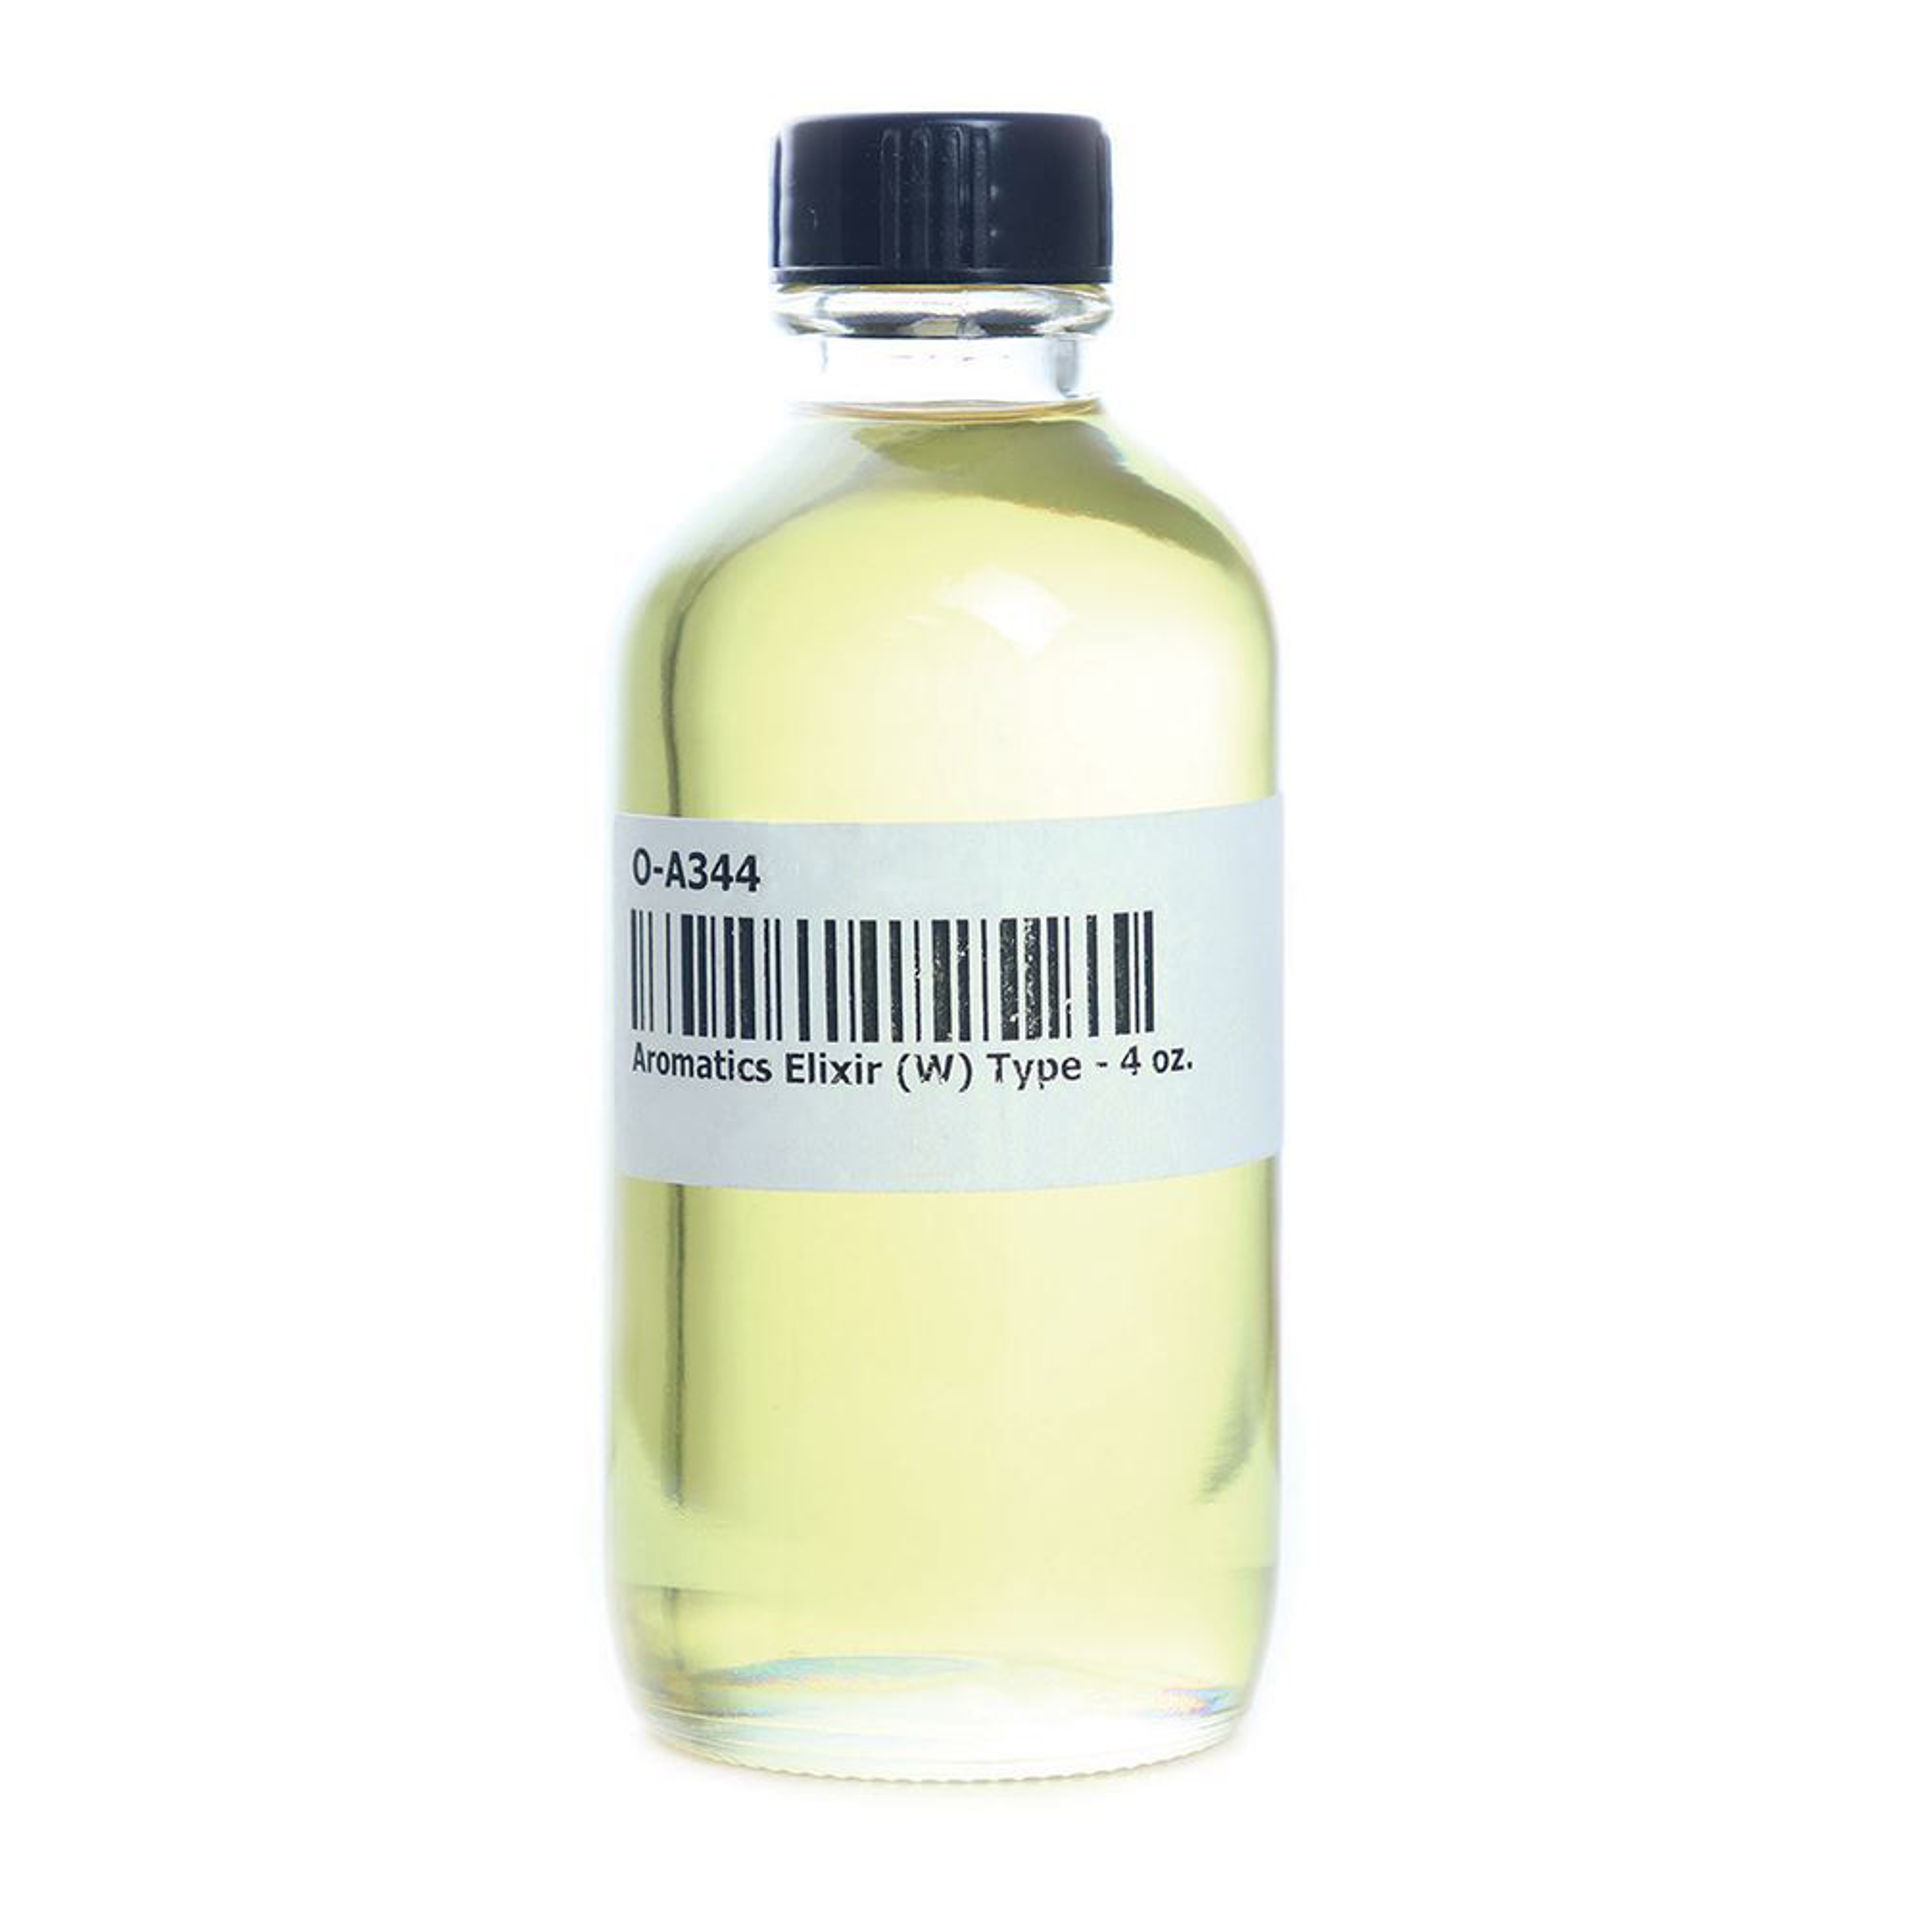 Picture of Aromatics Elixir (W) Type - 4 oz.